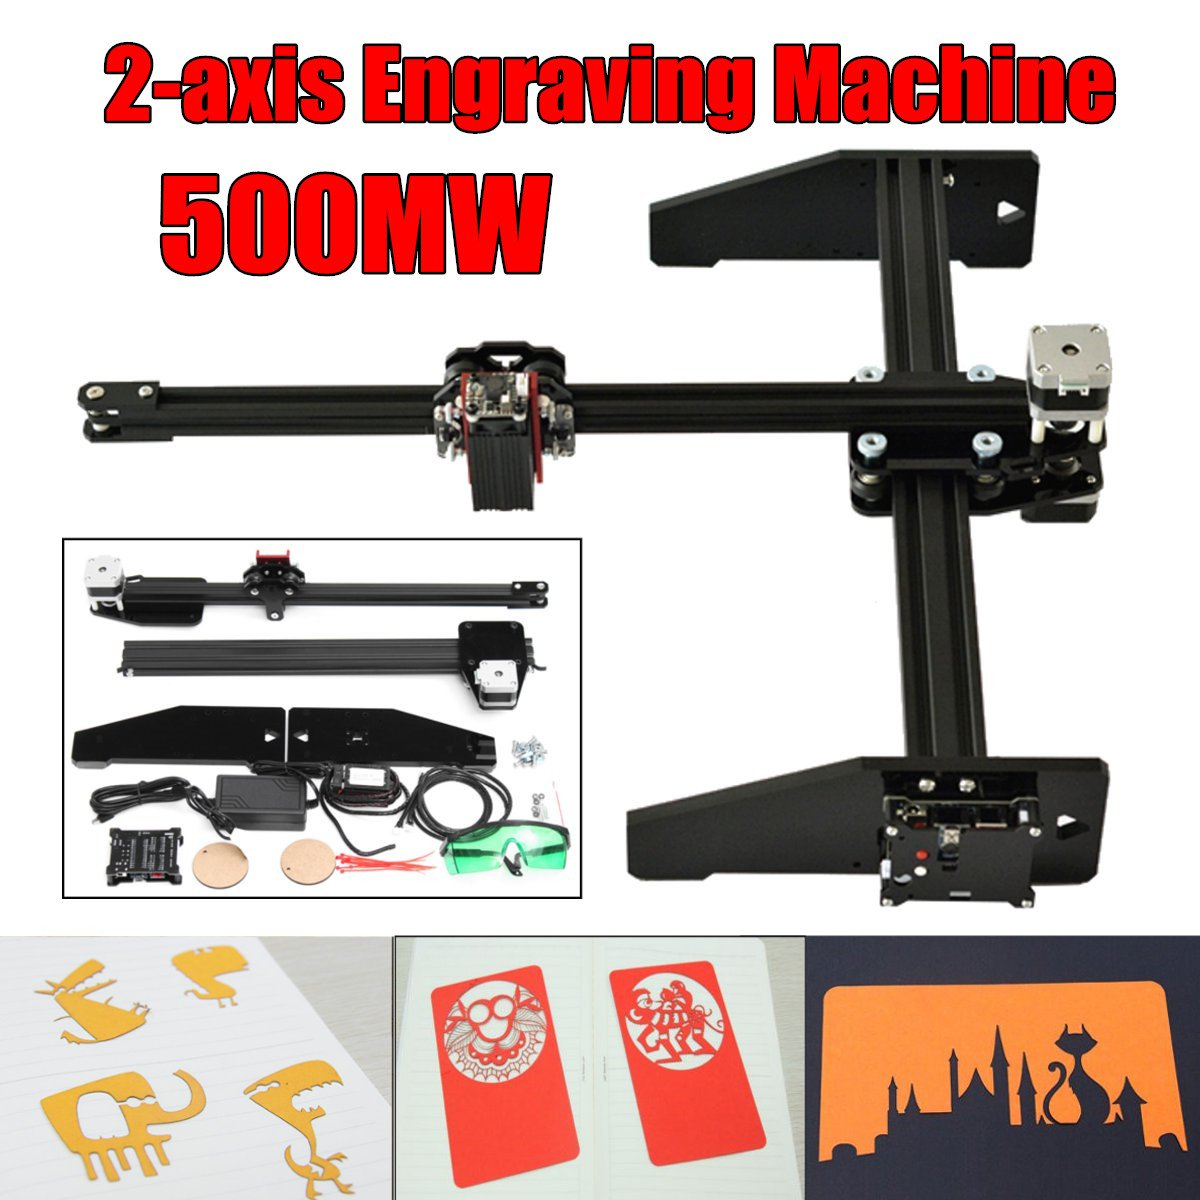 2 Axis 500mw A3 diy laser engraving machine,CNC Carver Cutter,metal engrave marking machine,metal carving machine,advanced toys защитное стекло caseguru зеркальное front